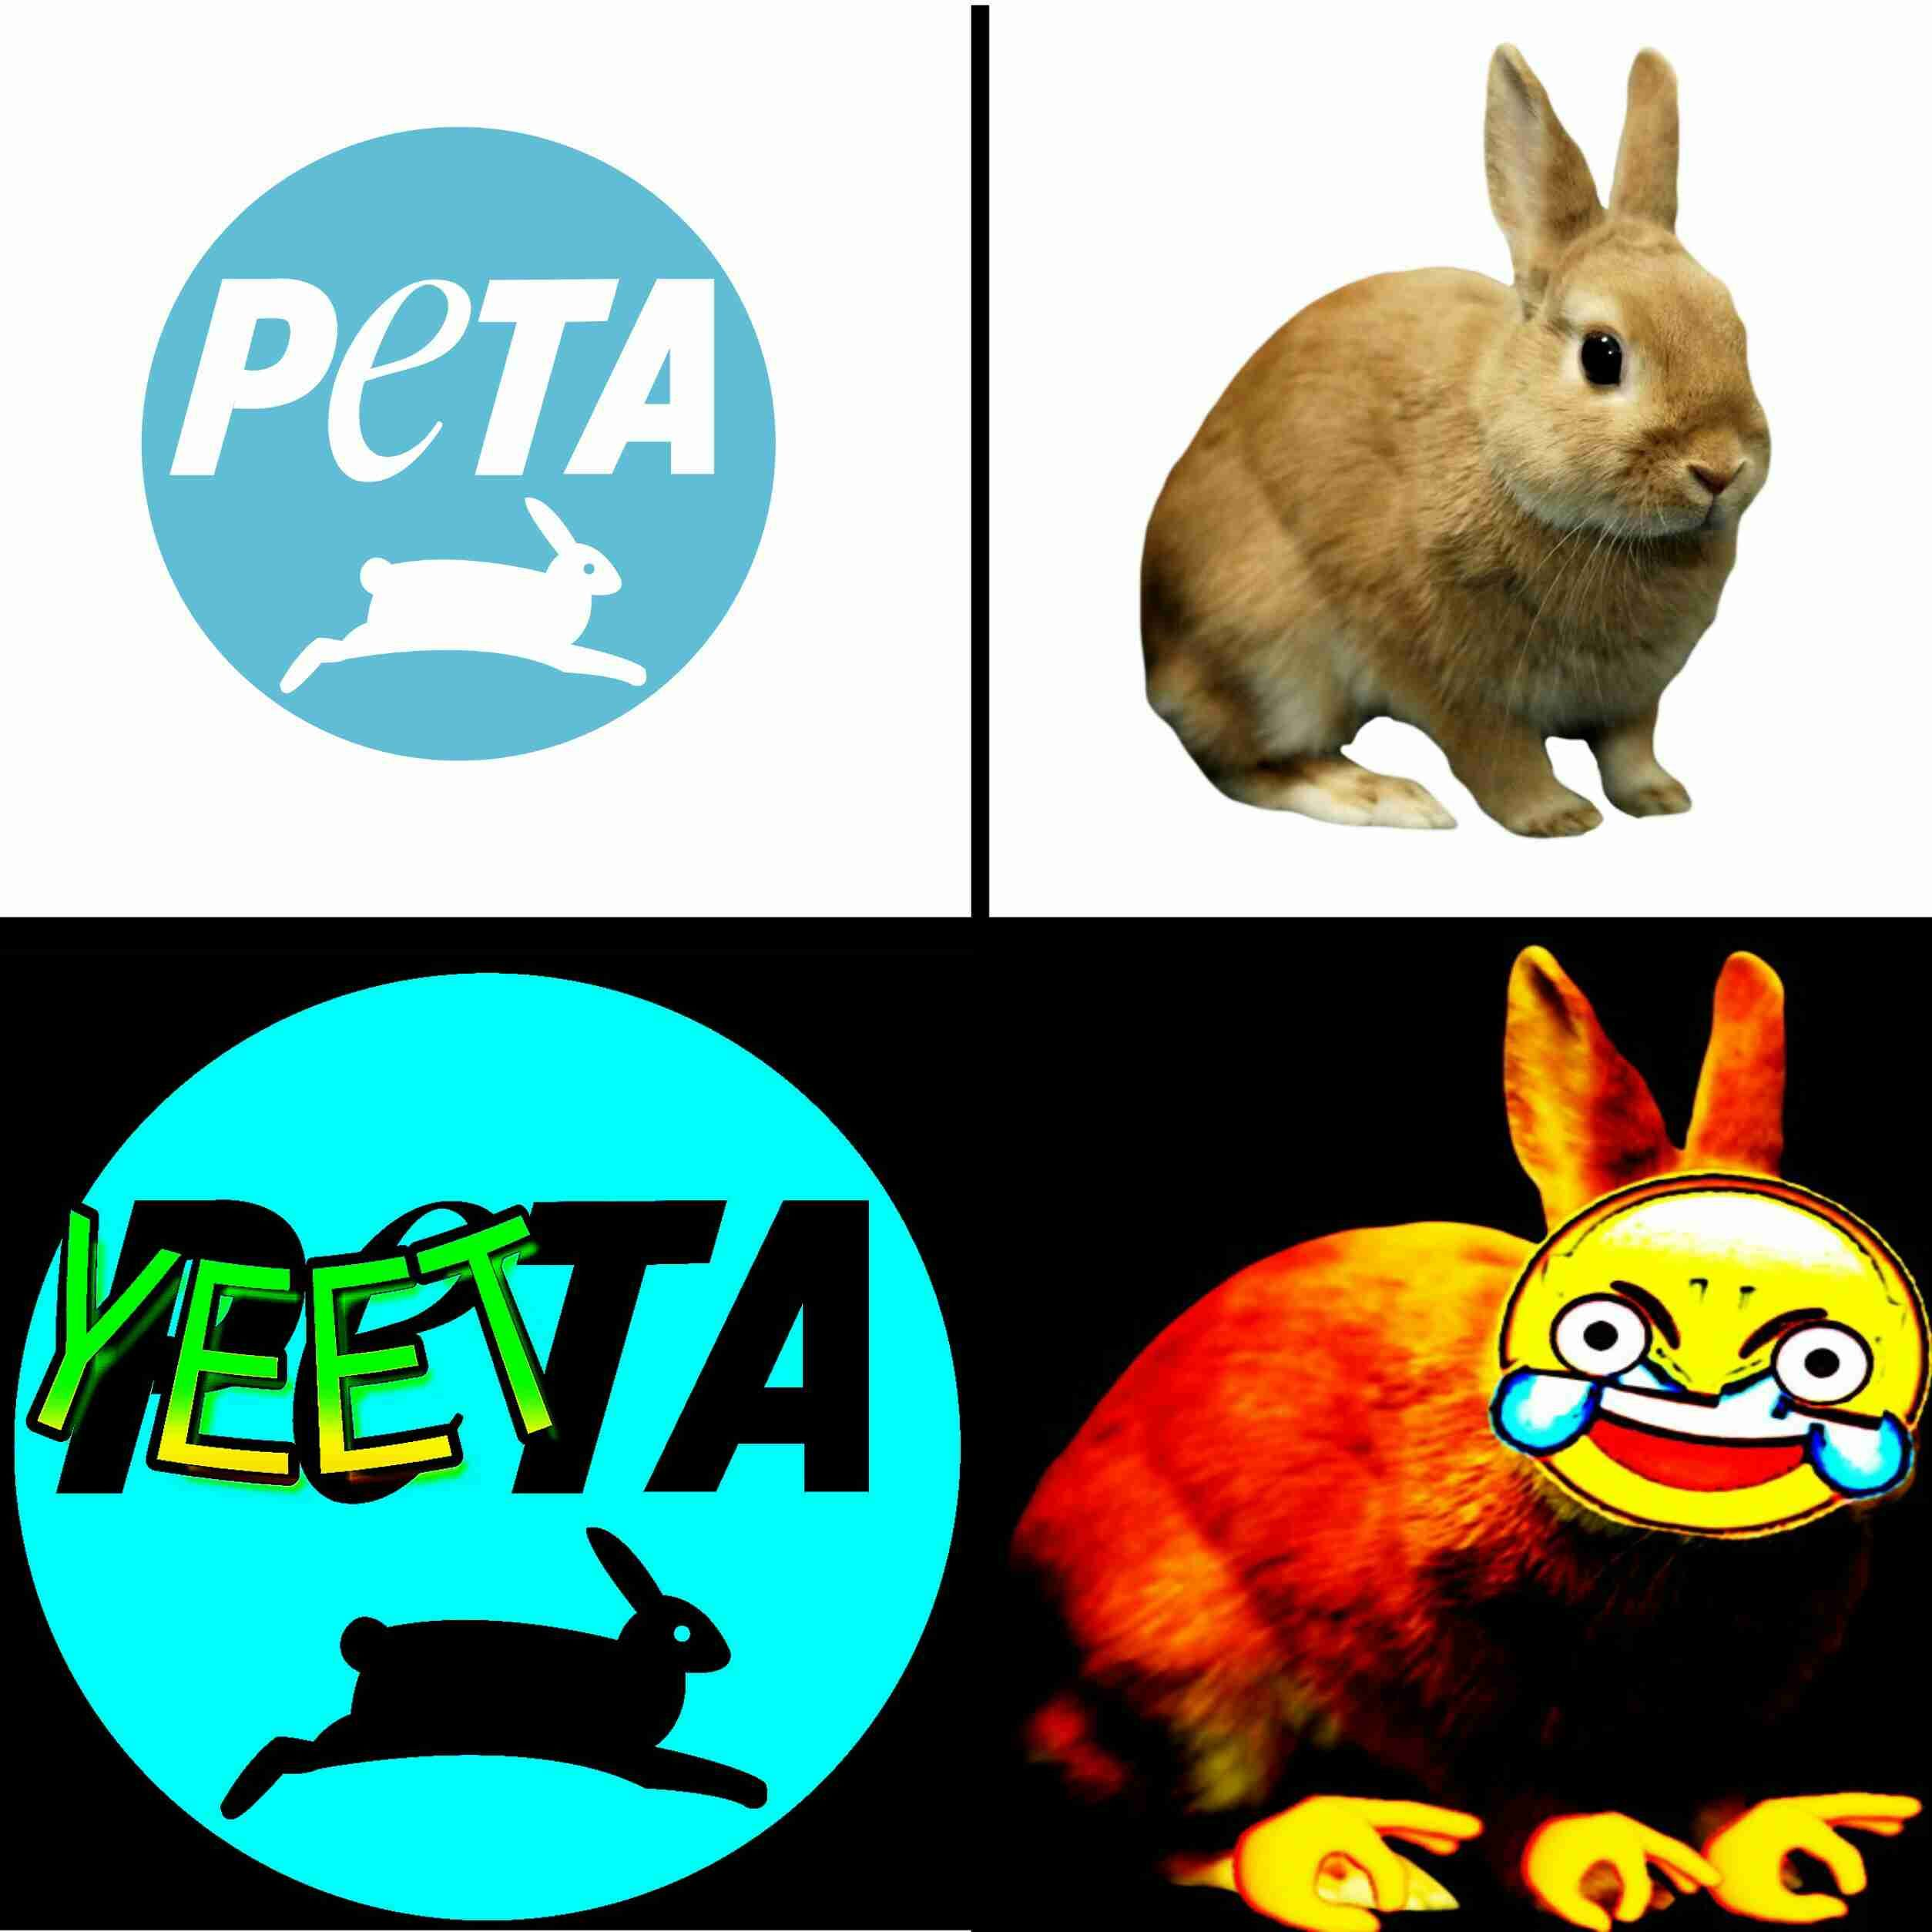 They Support Yeets Funny Memes Dankest Memes Old Memes